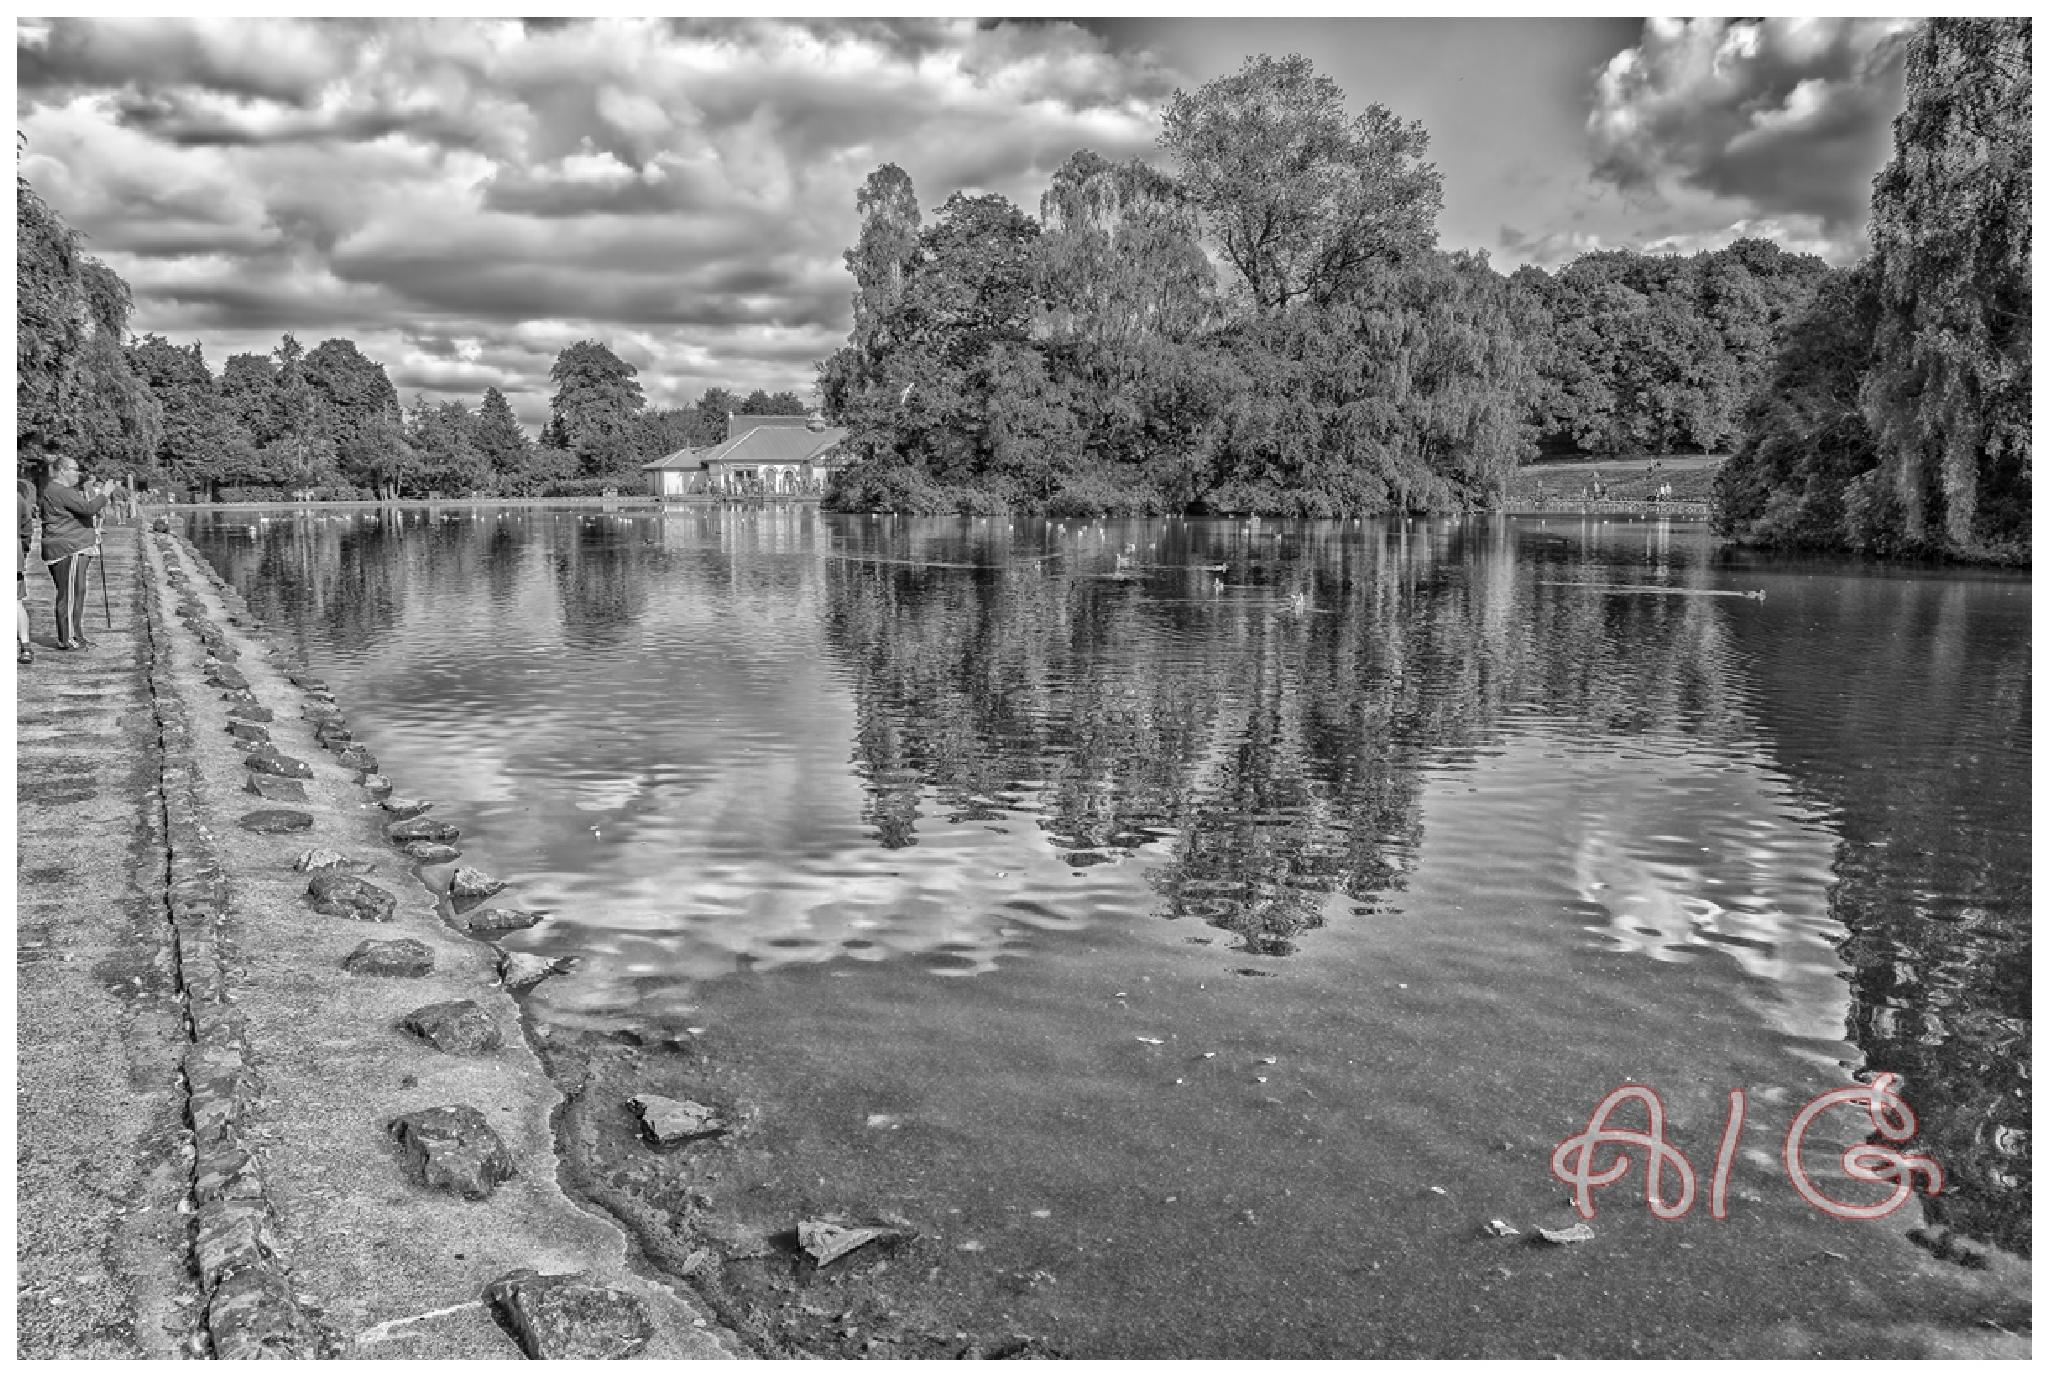 Park by AlanG